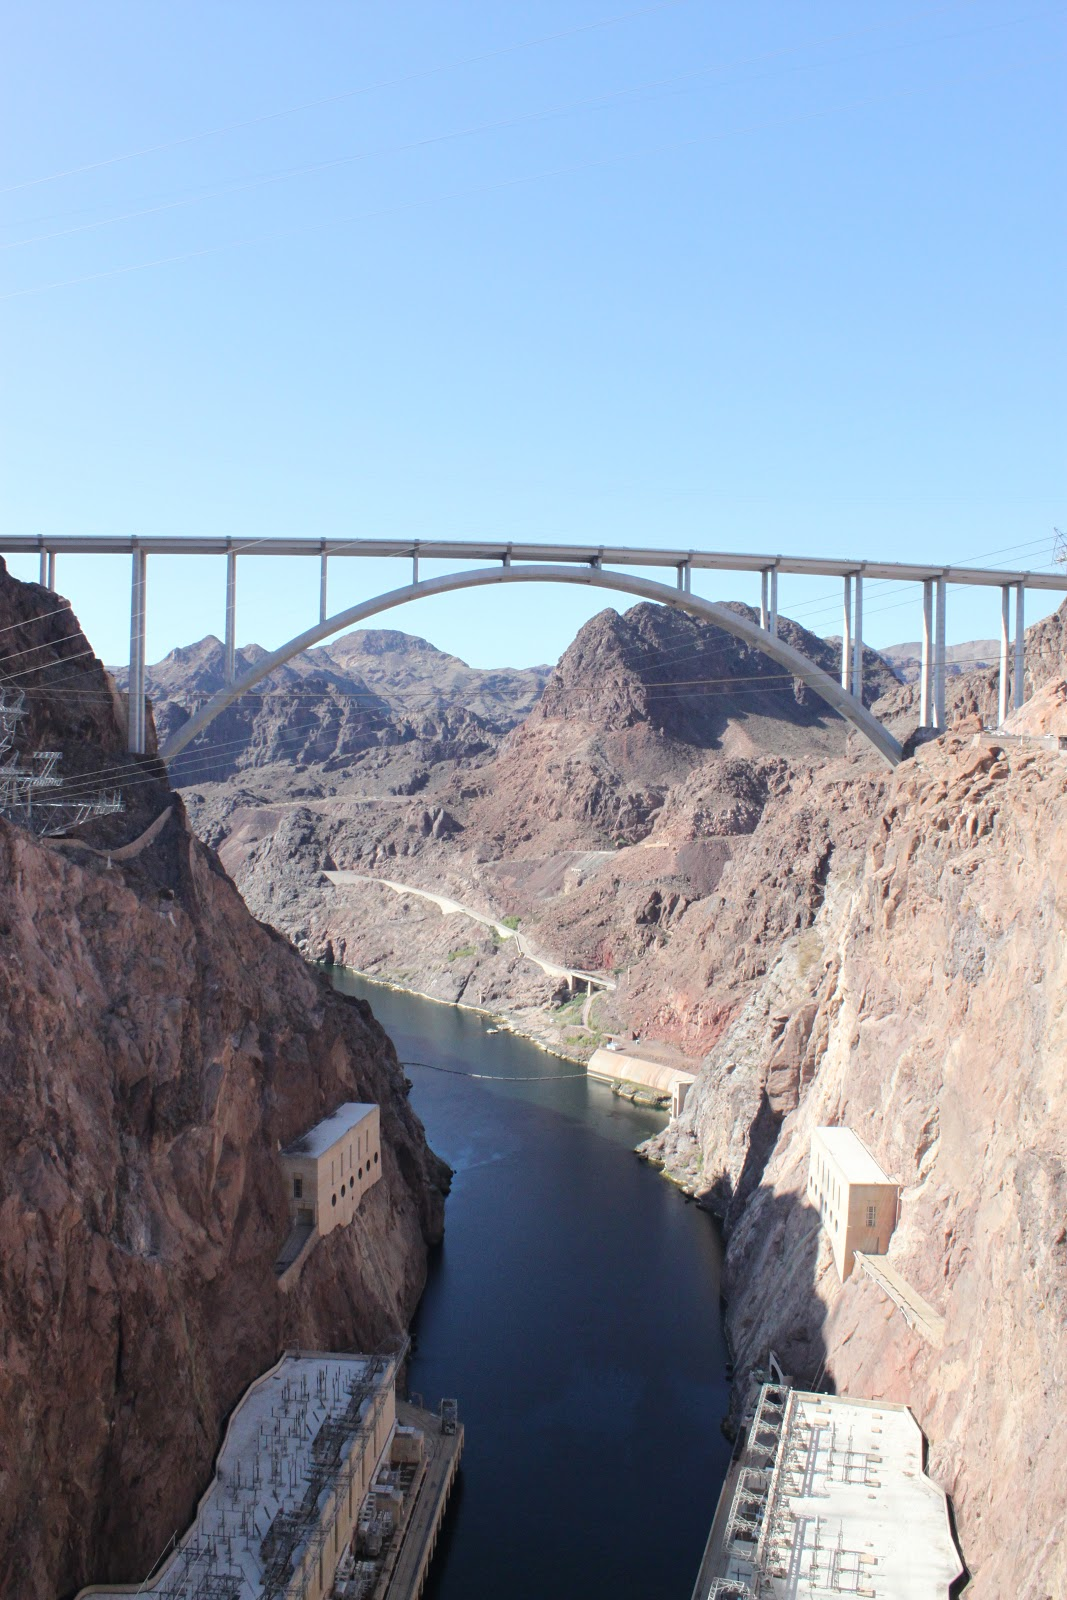 Vegas Vacation Dam: It's Fun 4 Me!: Las Vegas Vacation: Road Trip To Hoover Dam